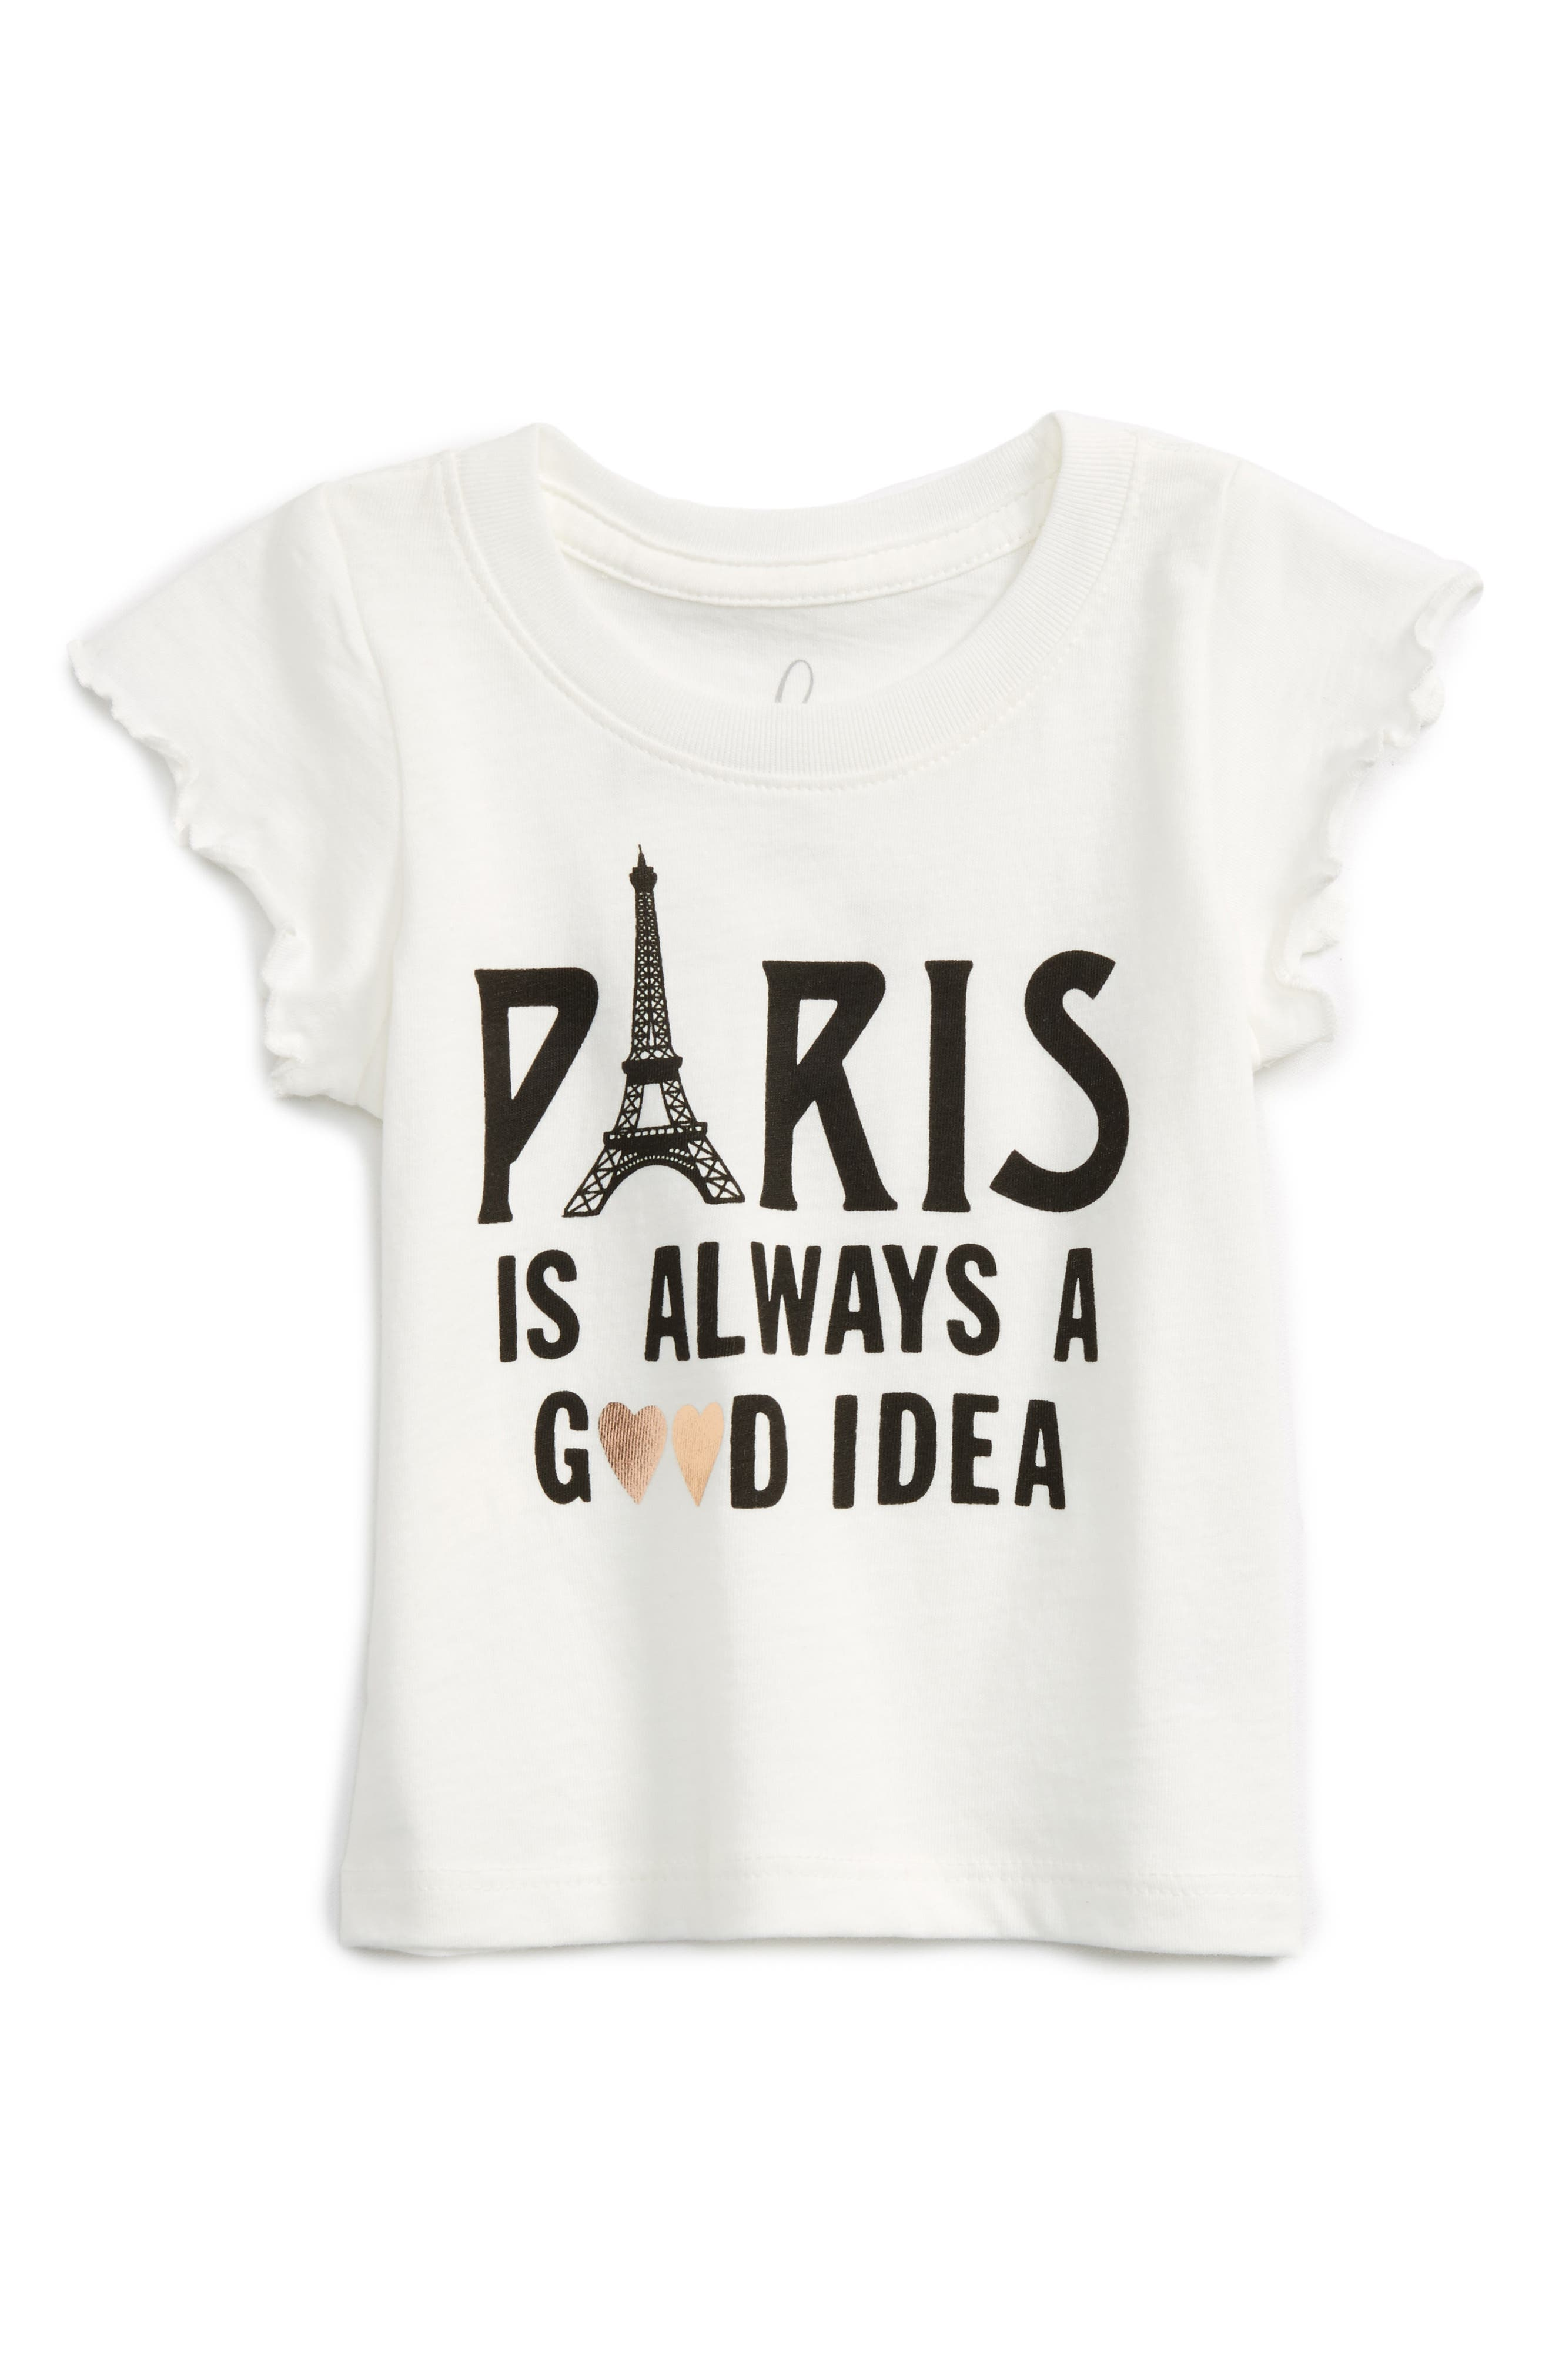 Peek Paris Is Always a Good Idea Tee (Baby Girls)